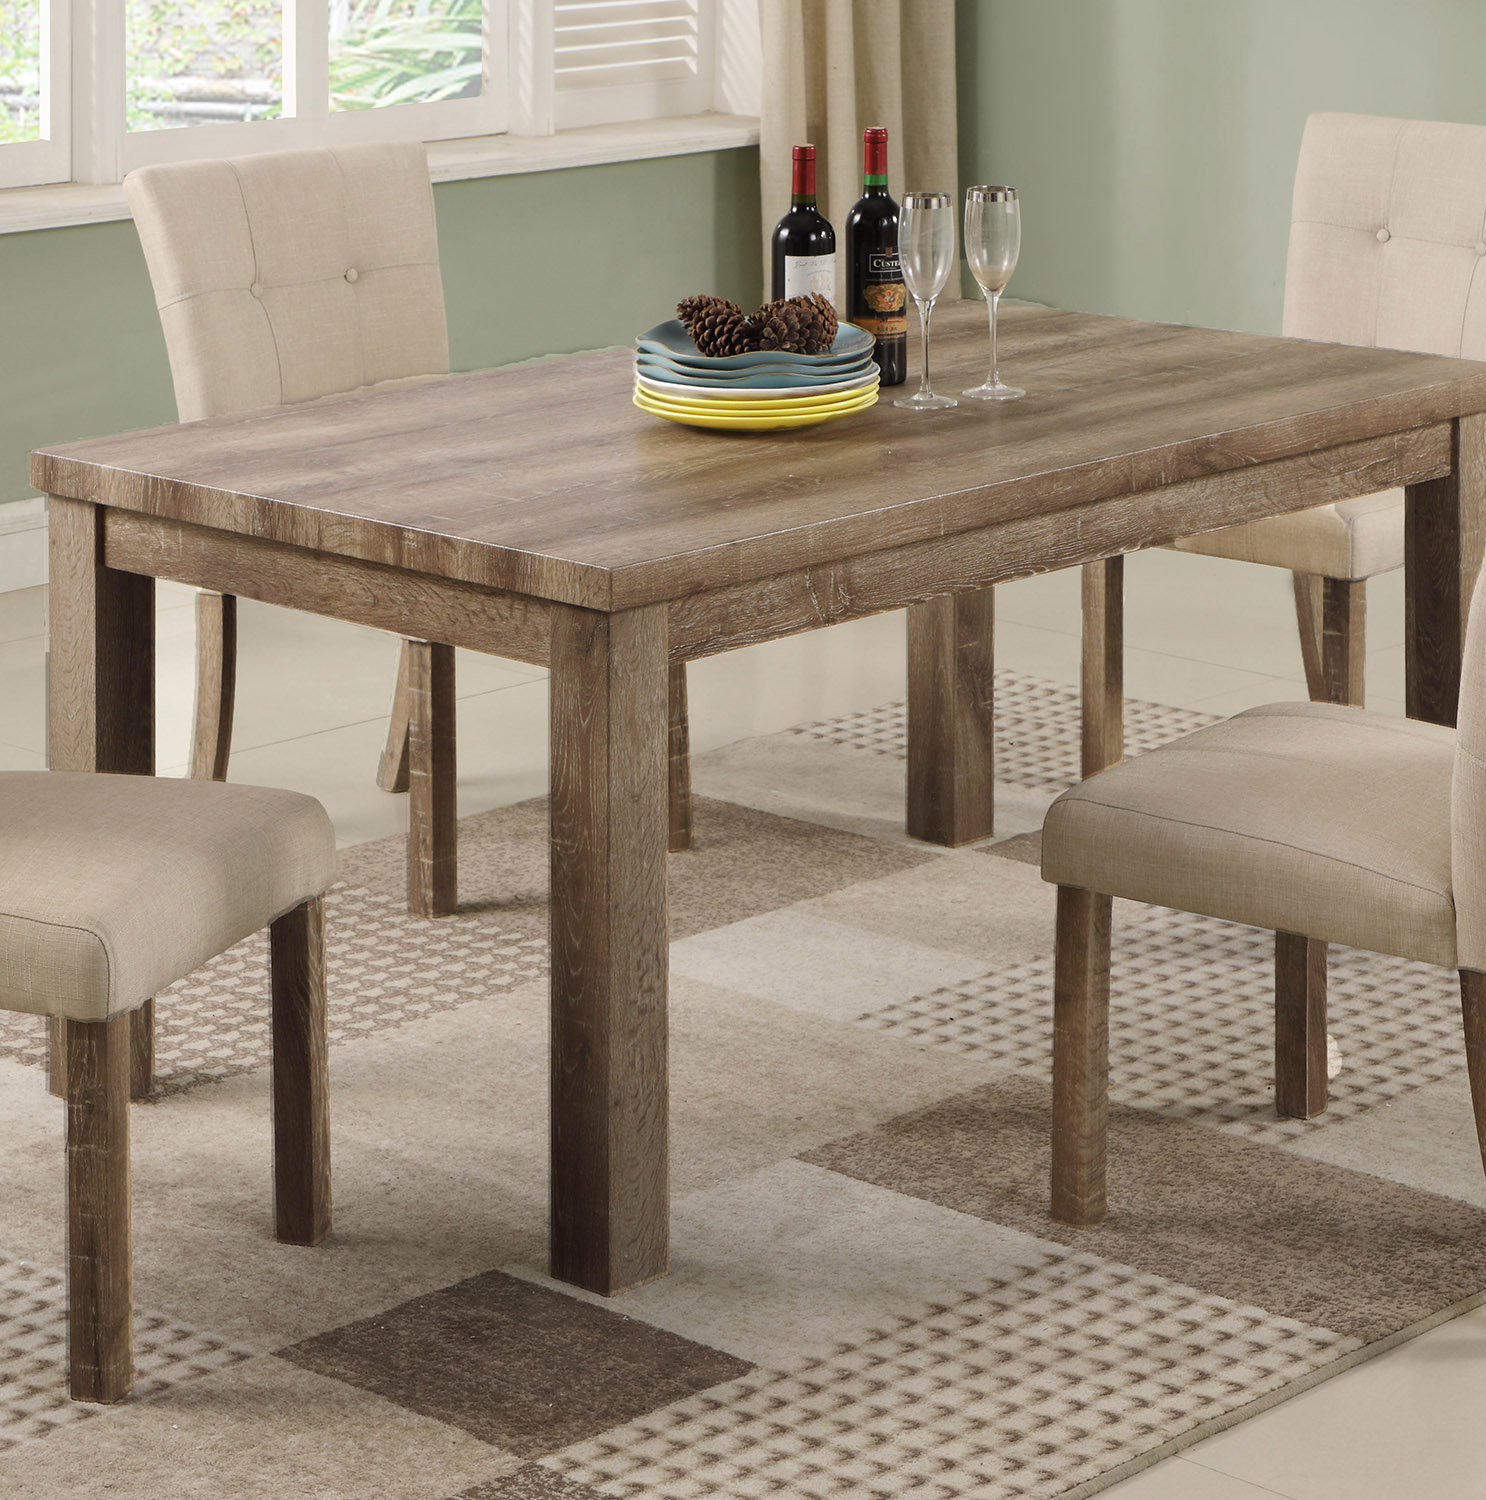 Ebay With Regard To Well Known Ephraim 5 Piece Dining Sets (#5 of 20)